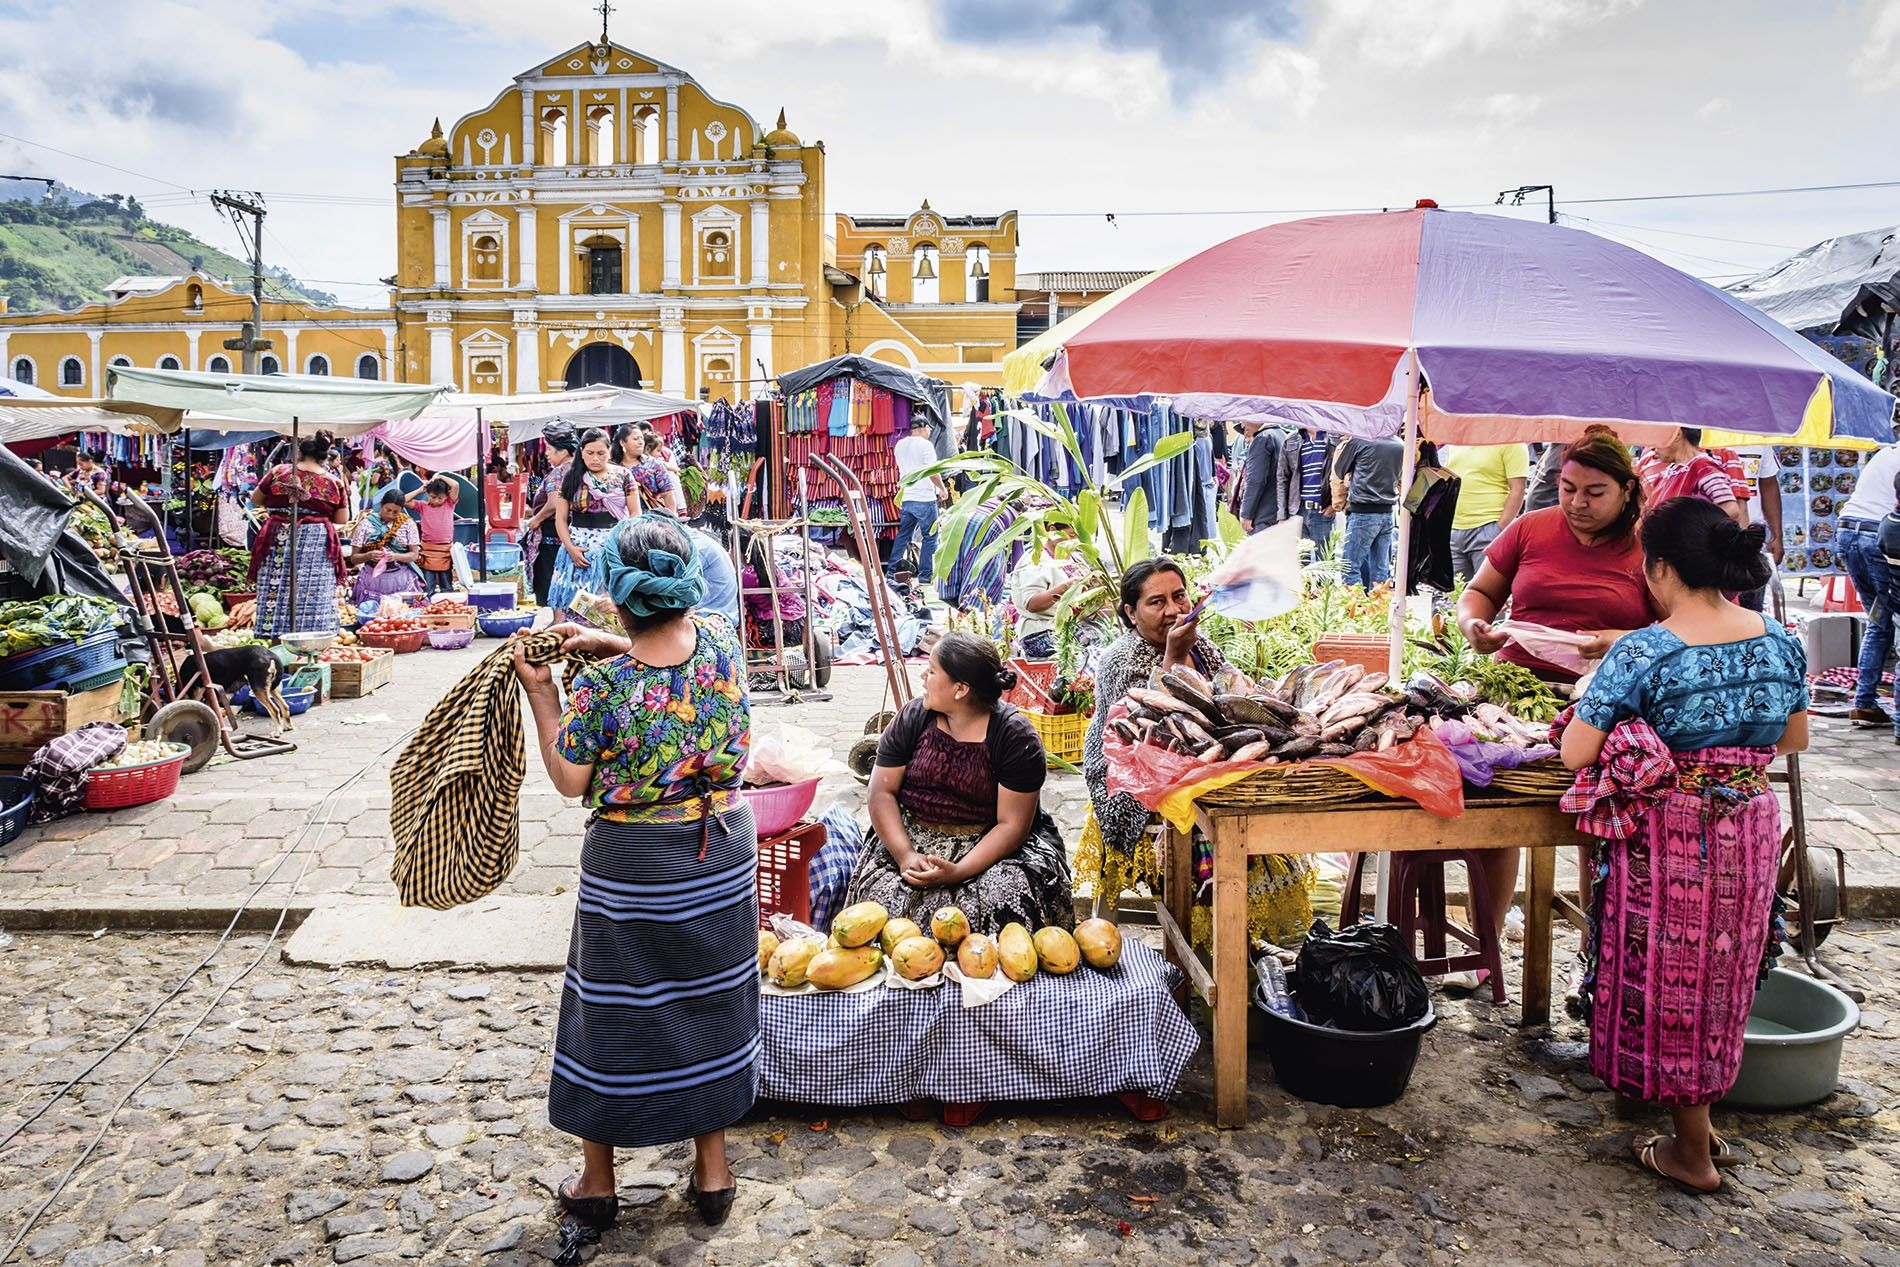 Sunday market in front of the Santa Maria de Jesus